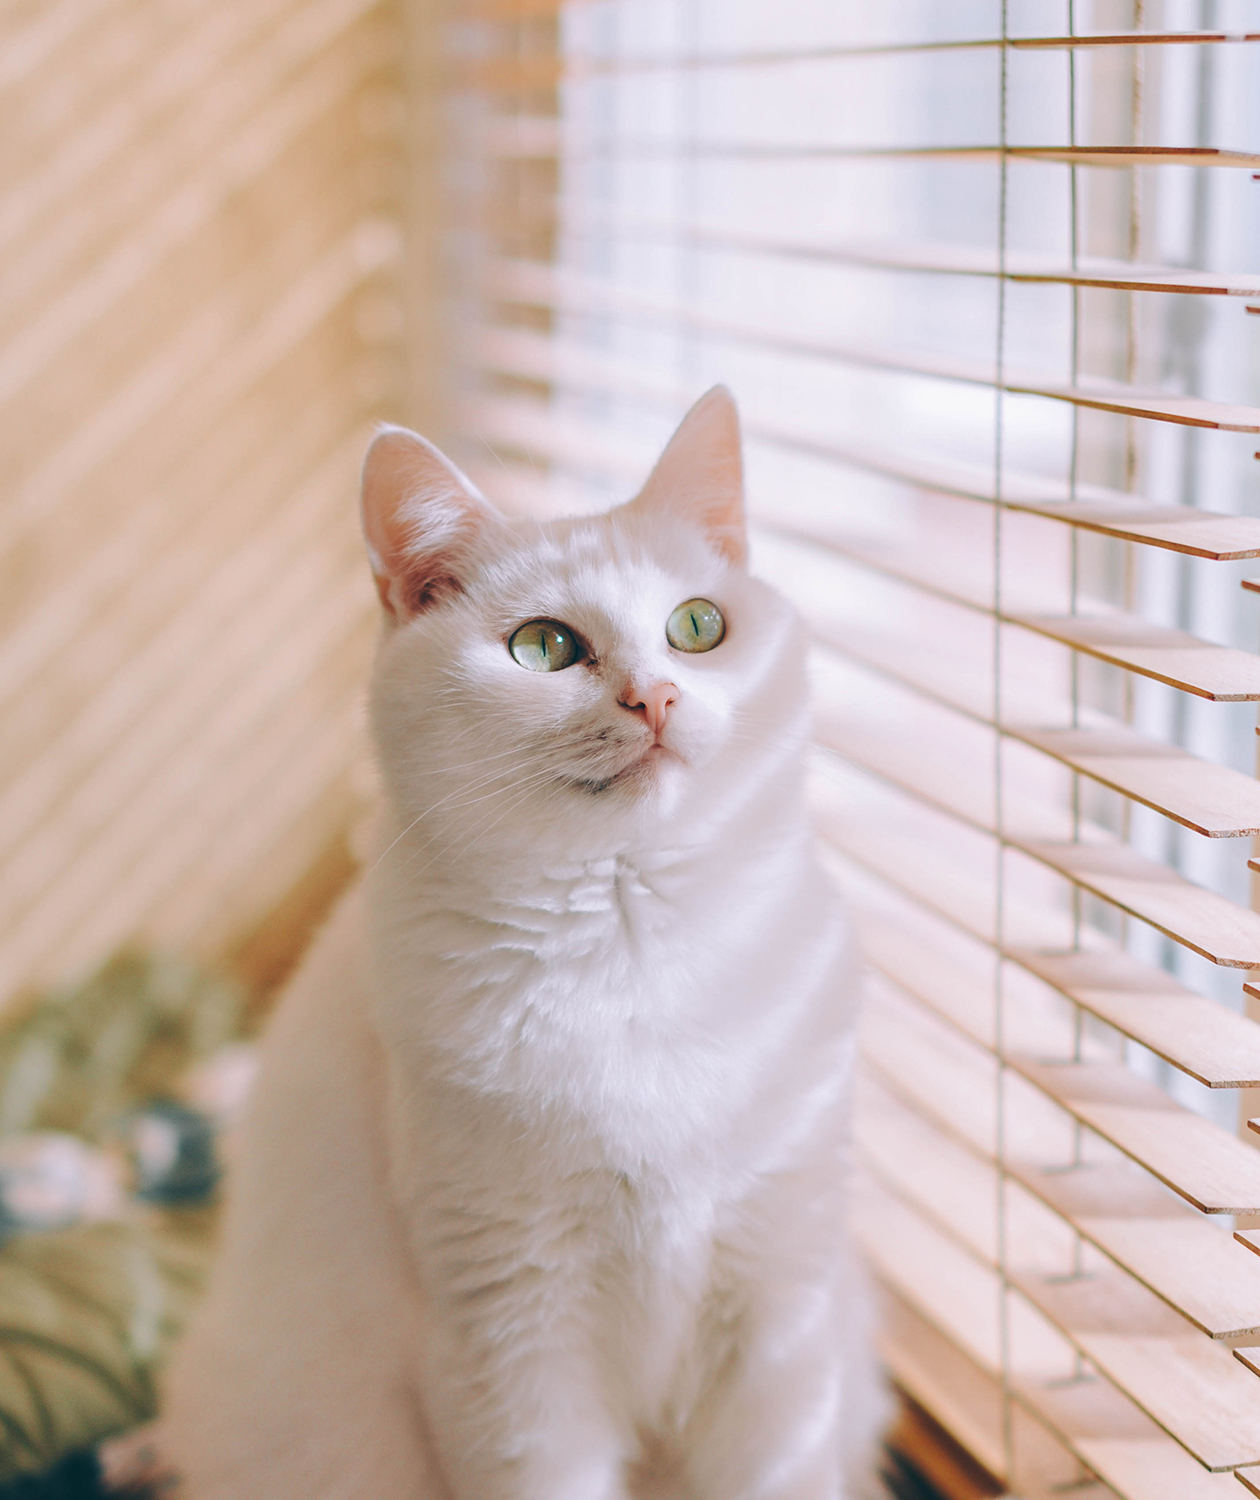 White cat next to window blinds